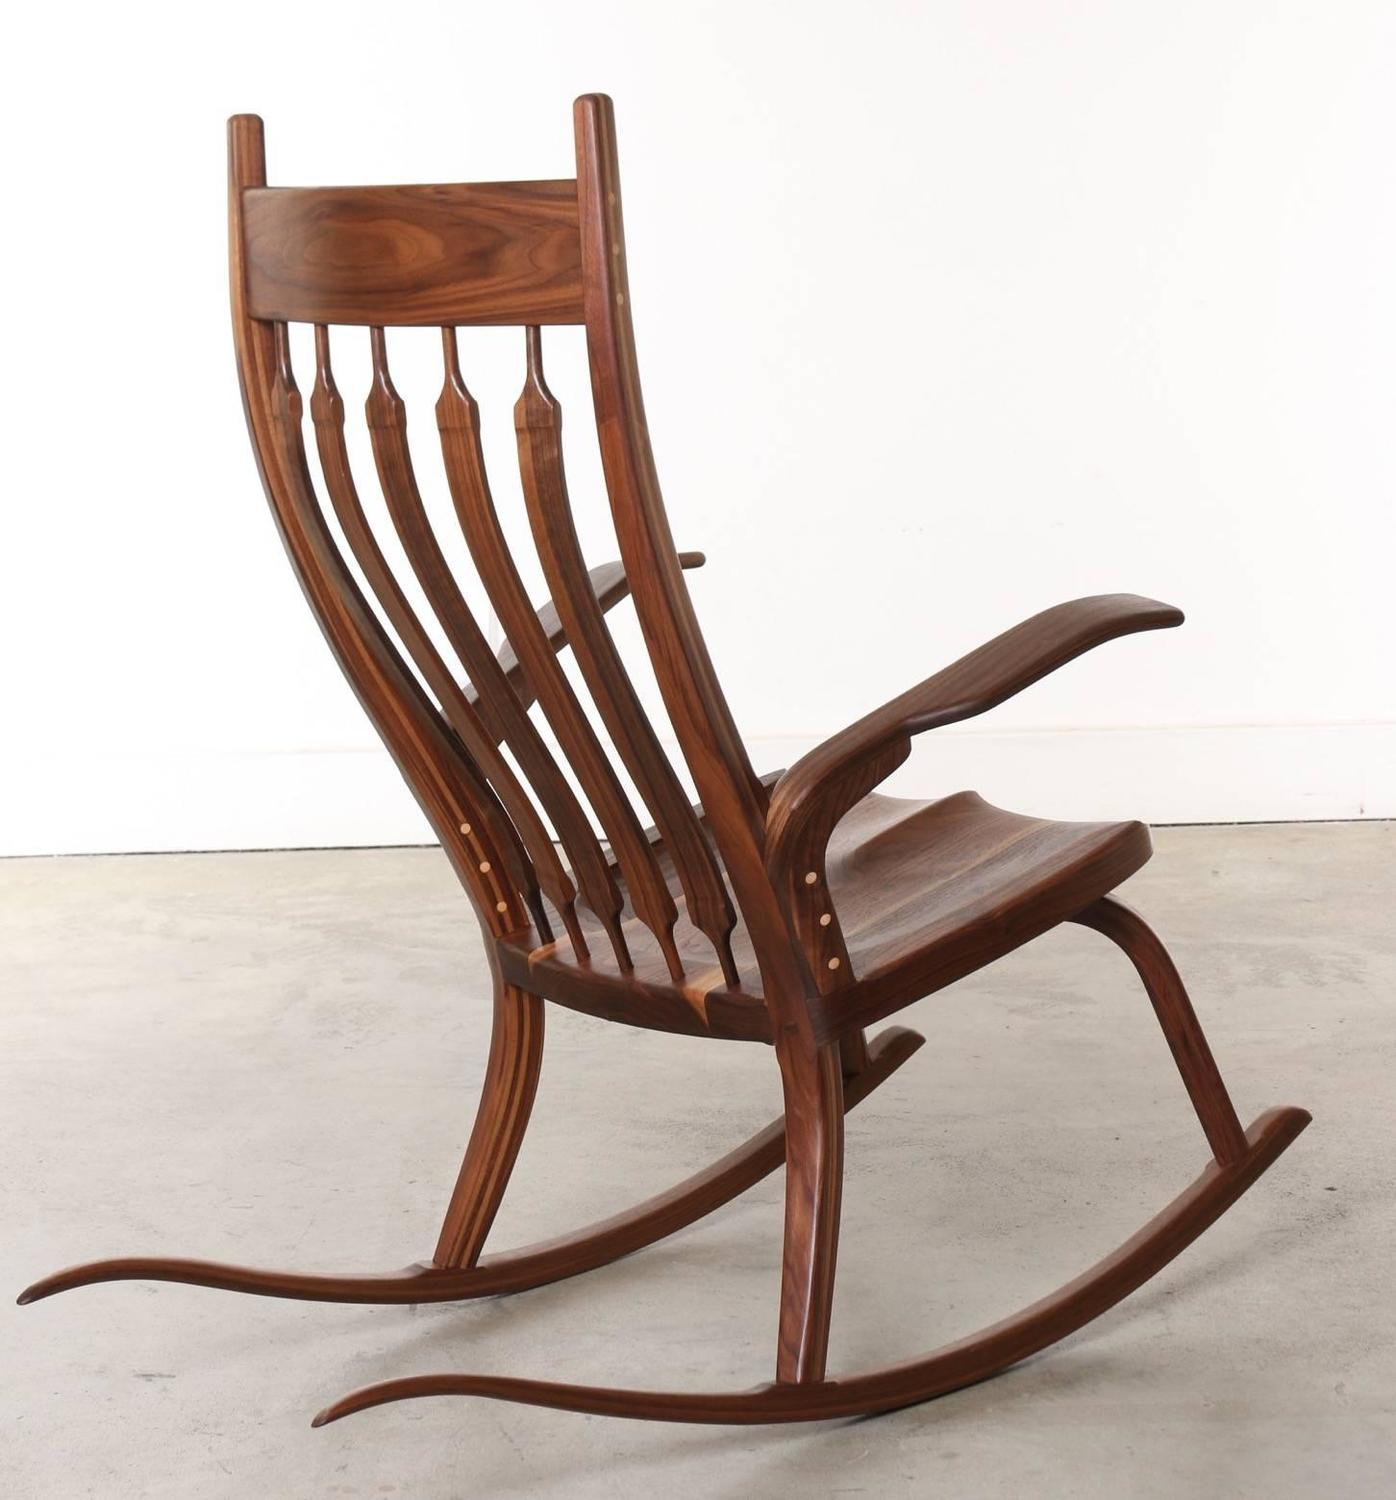 Wooden Rocking Chair For Sale Inspirations Home & Interior Design